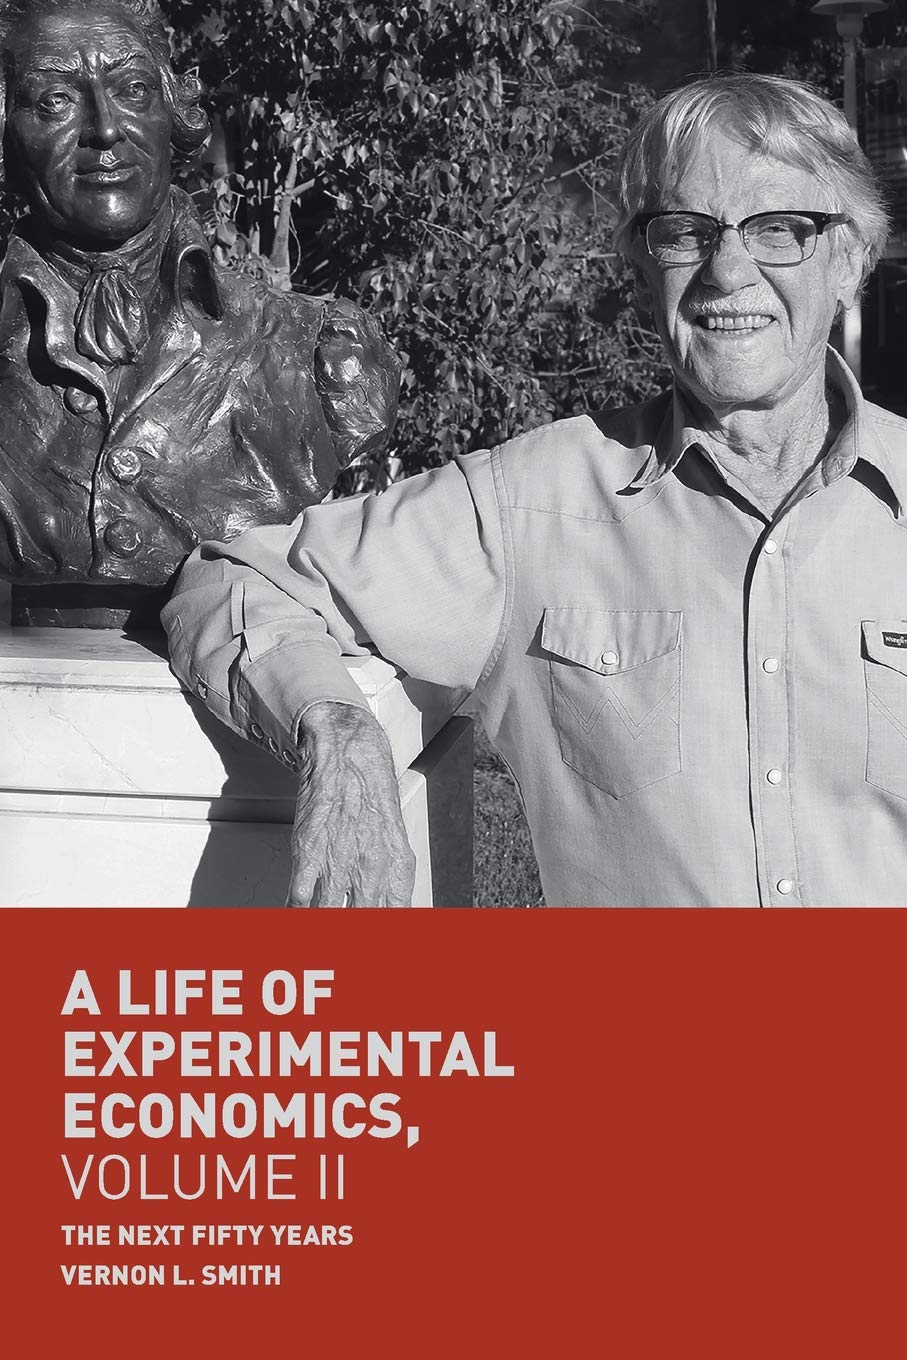 Image result for A Life of Experimental Economics, Volume II The Next Fifty Years